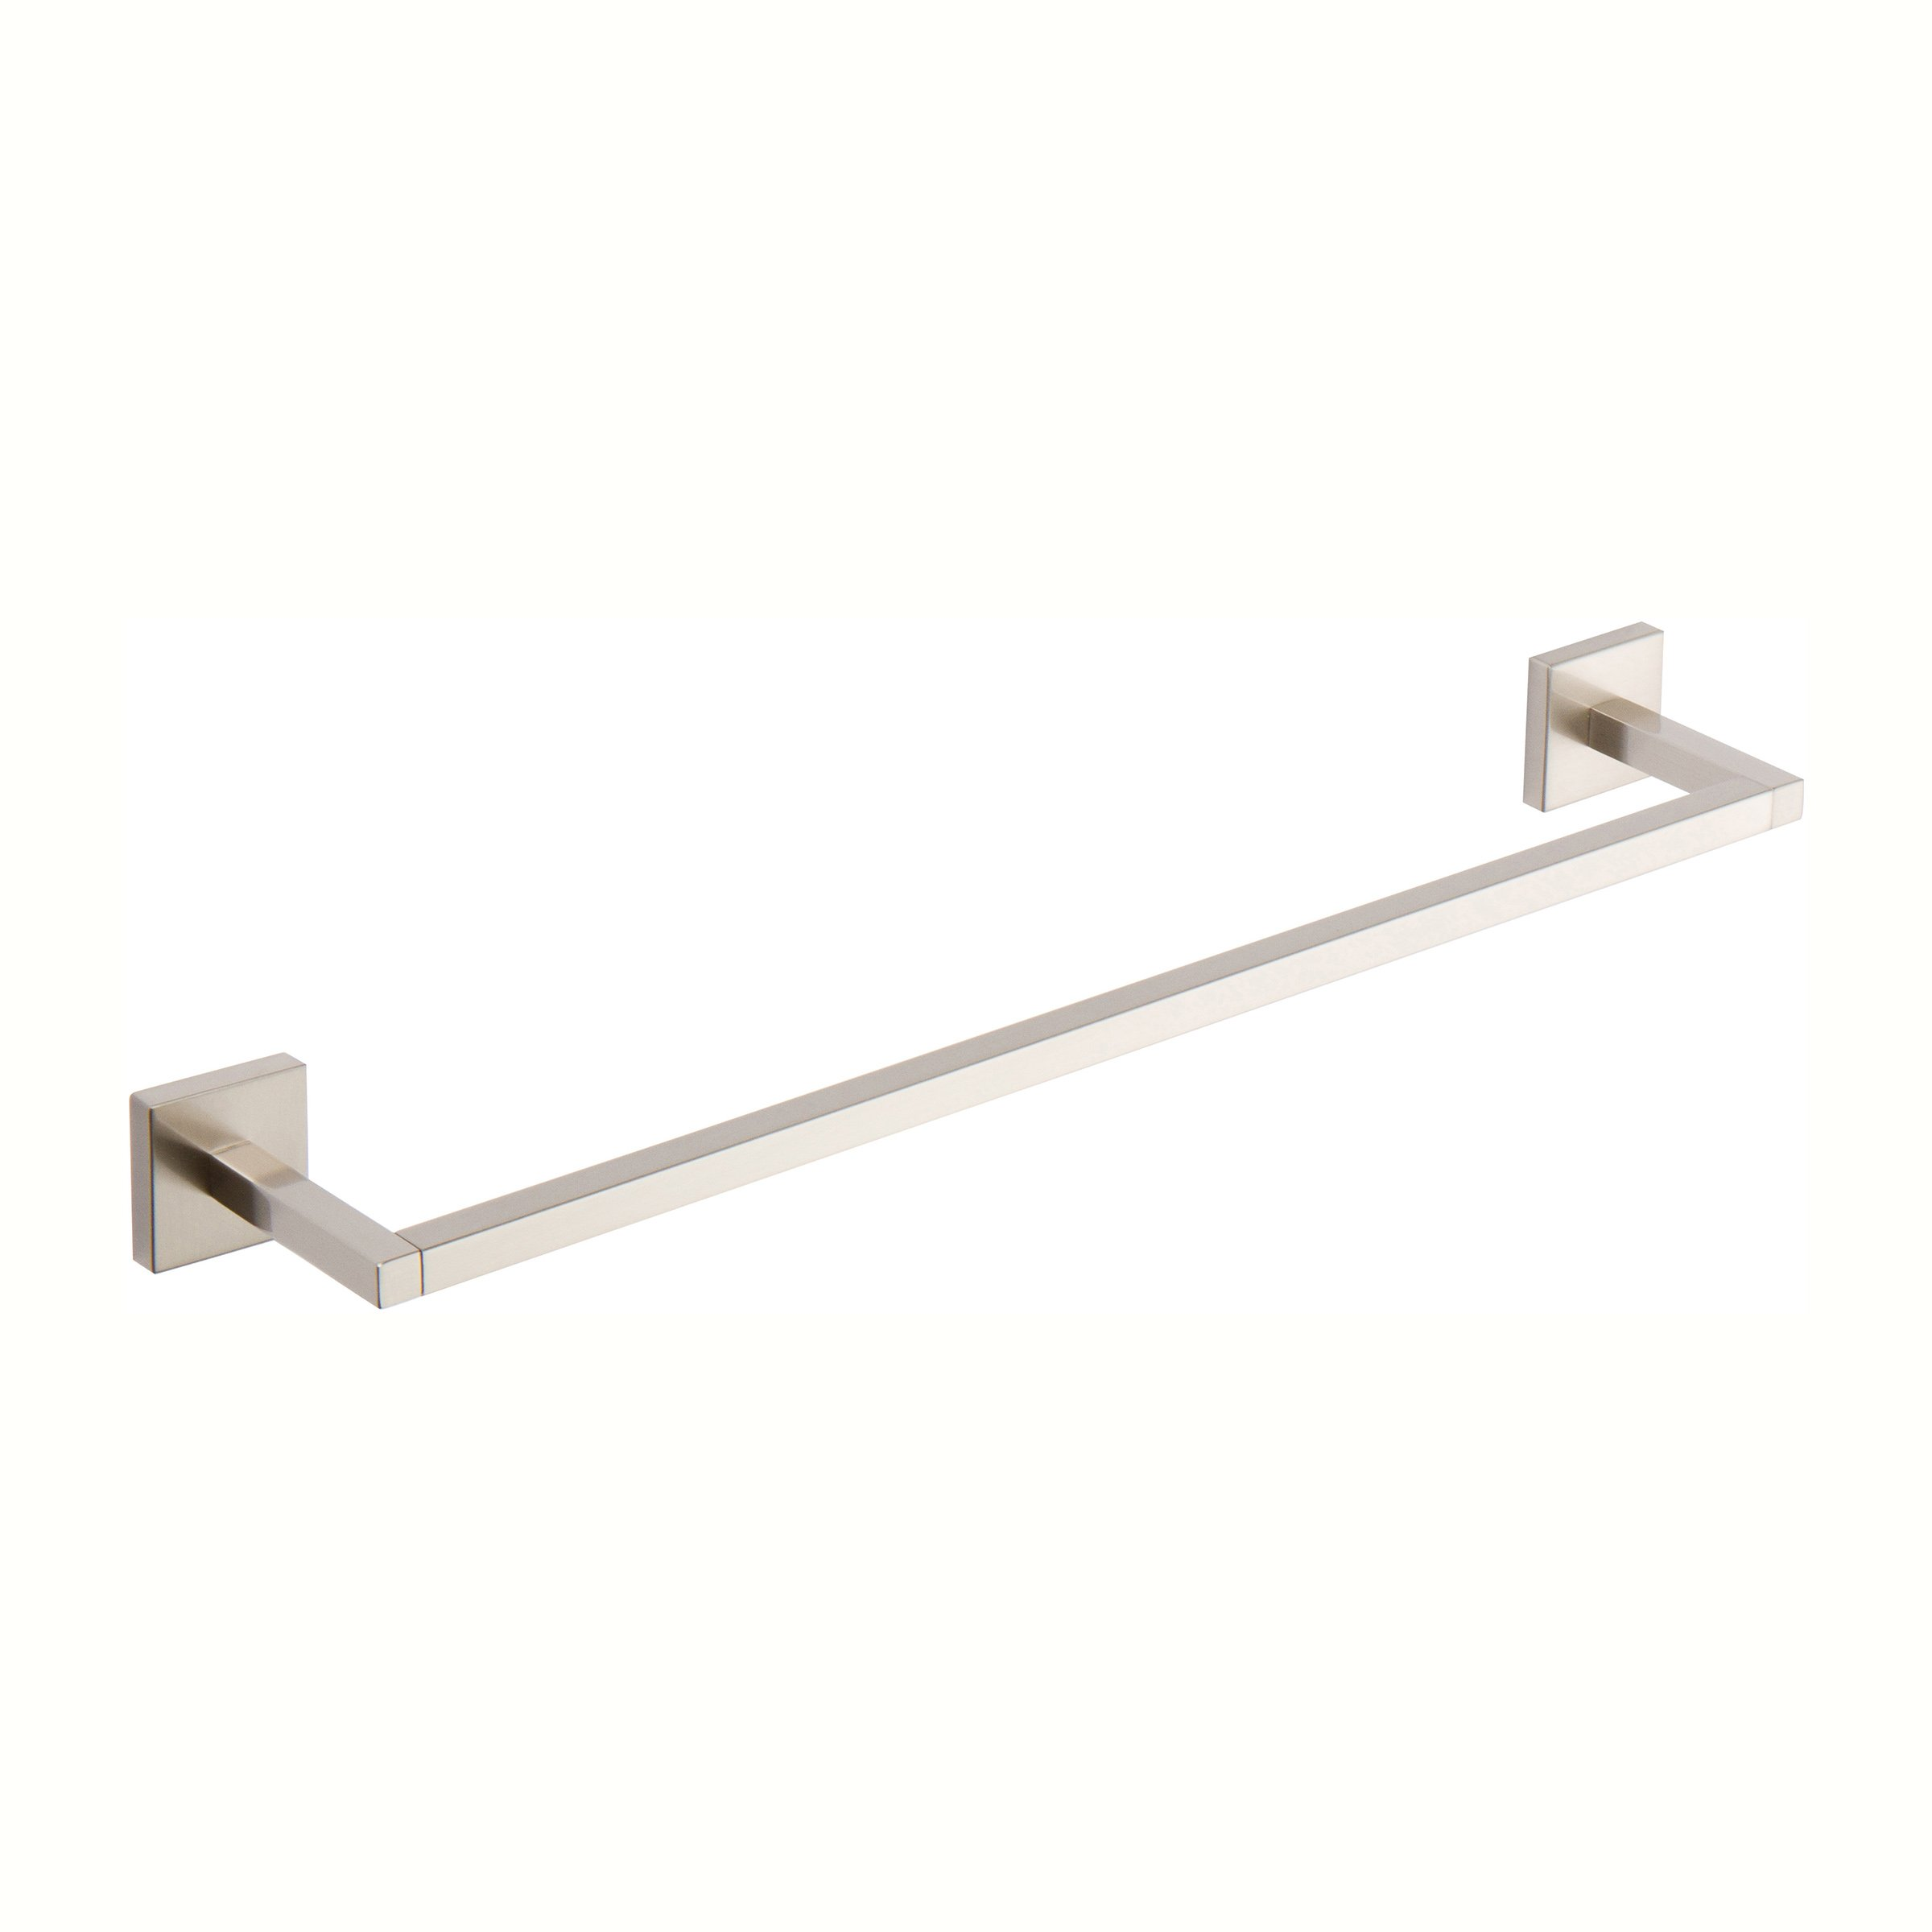 Ginger 5203/SN Lineal 24 Inch Towel Bar 5203, Satin Nickel